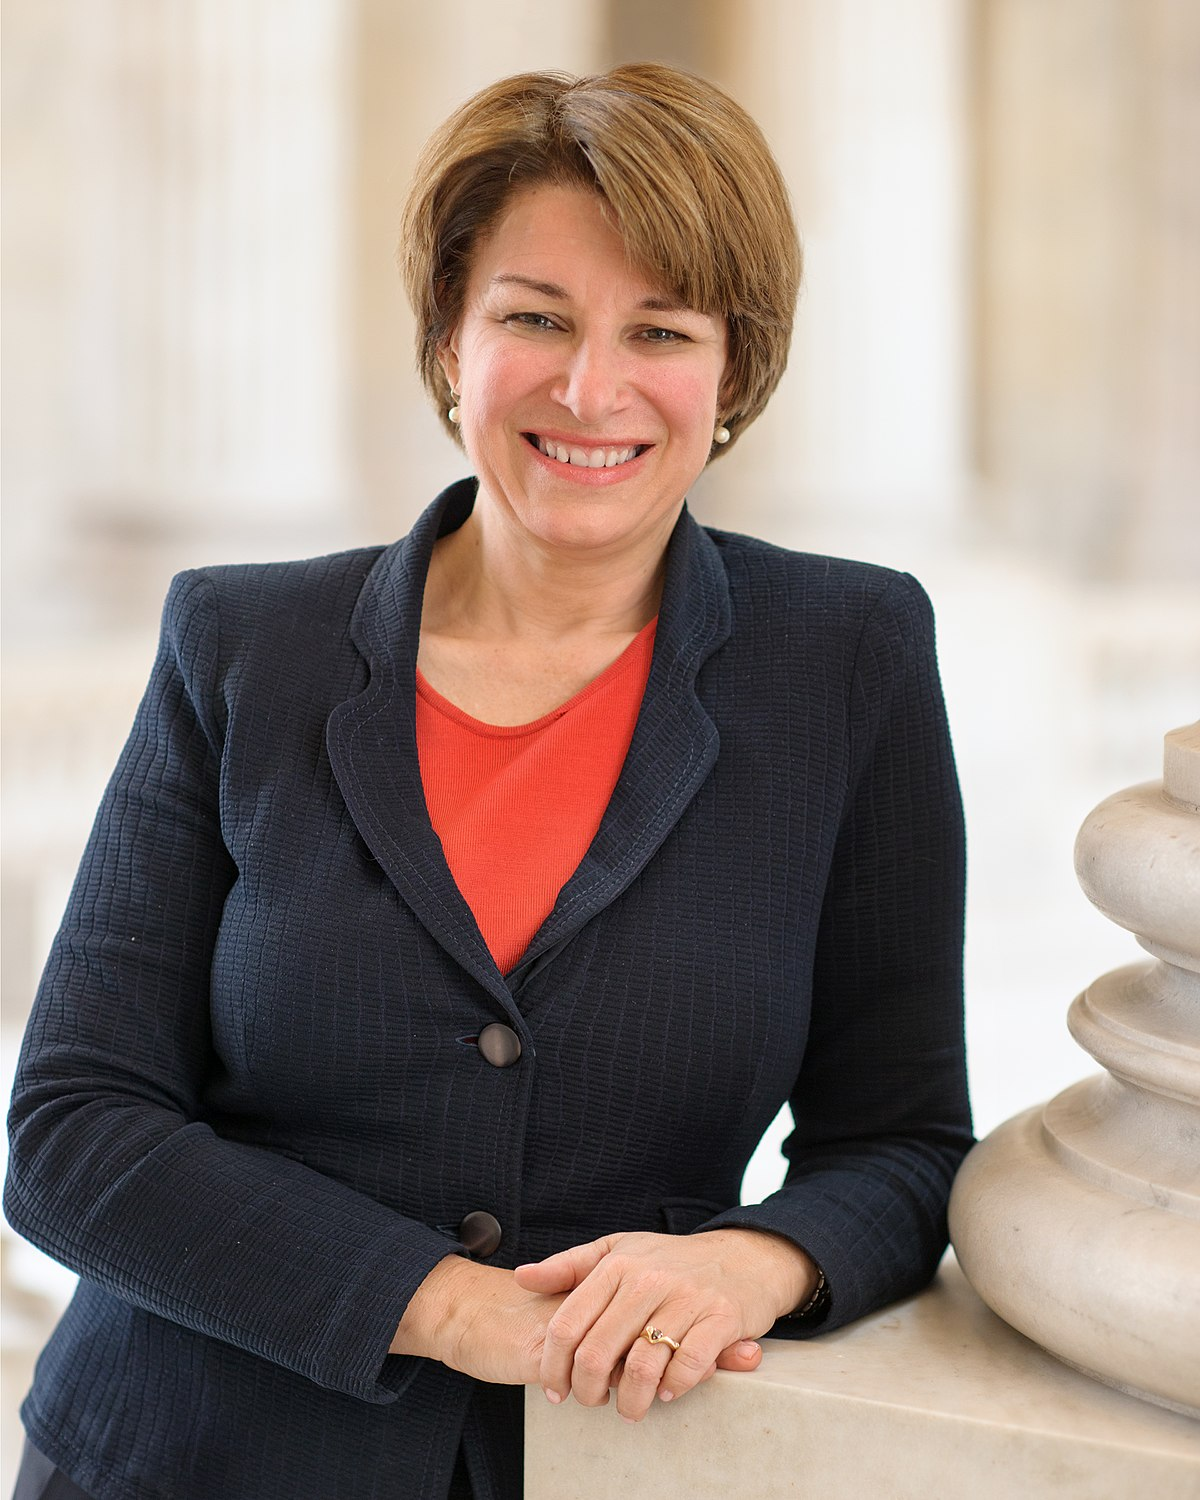 1200px-Amy_Klobuchar,_official_portrait,_113th_Congress.jpg